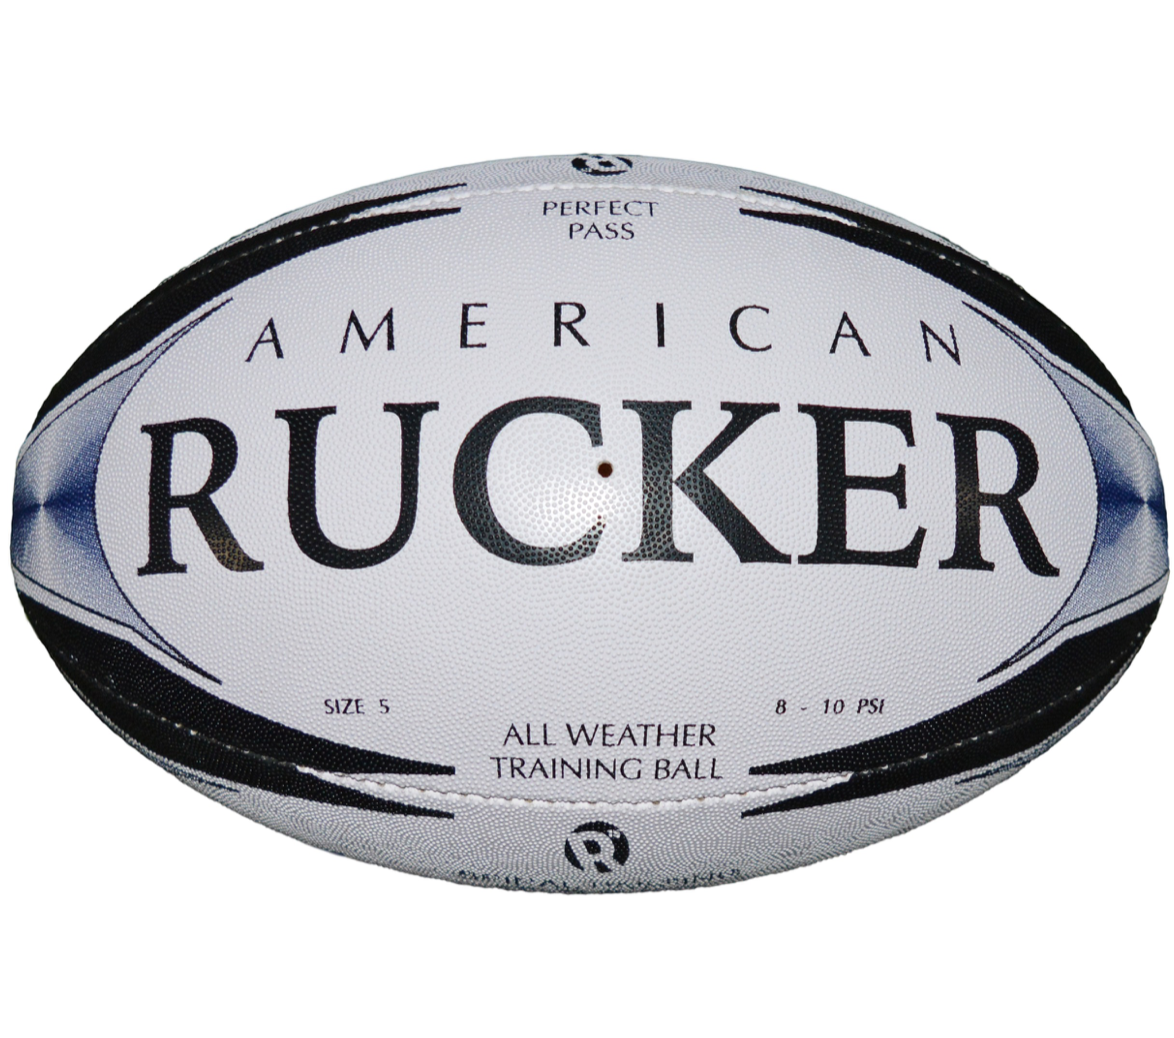 American Rucker Night Rucker Pink And Blue Rugby Ball